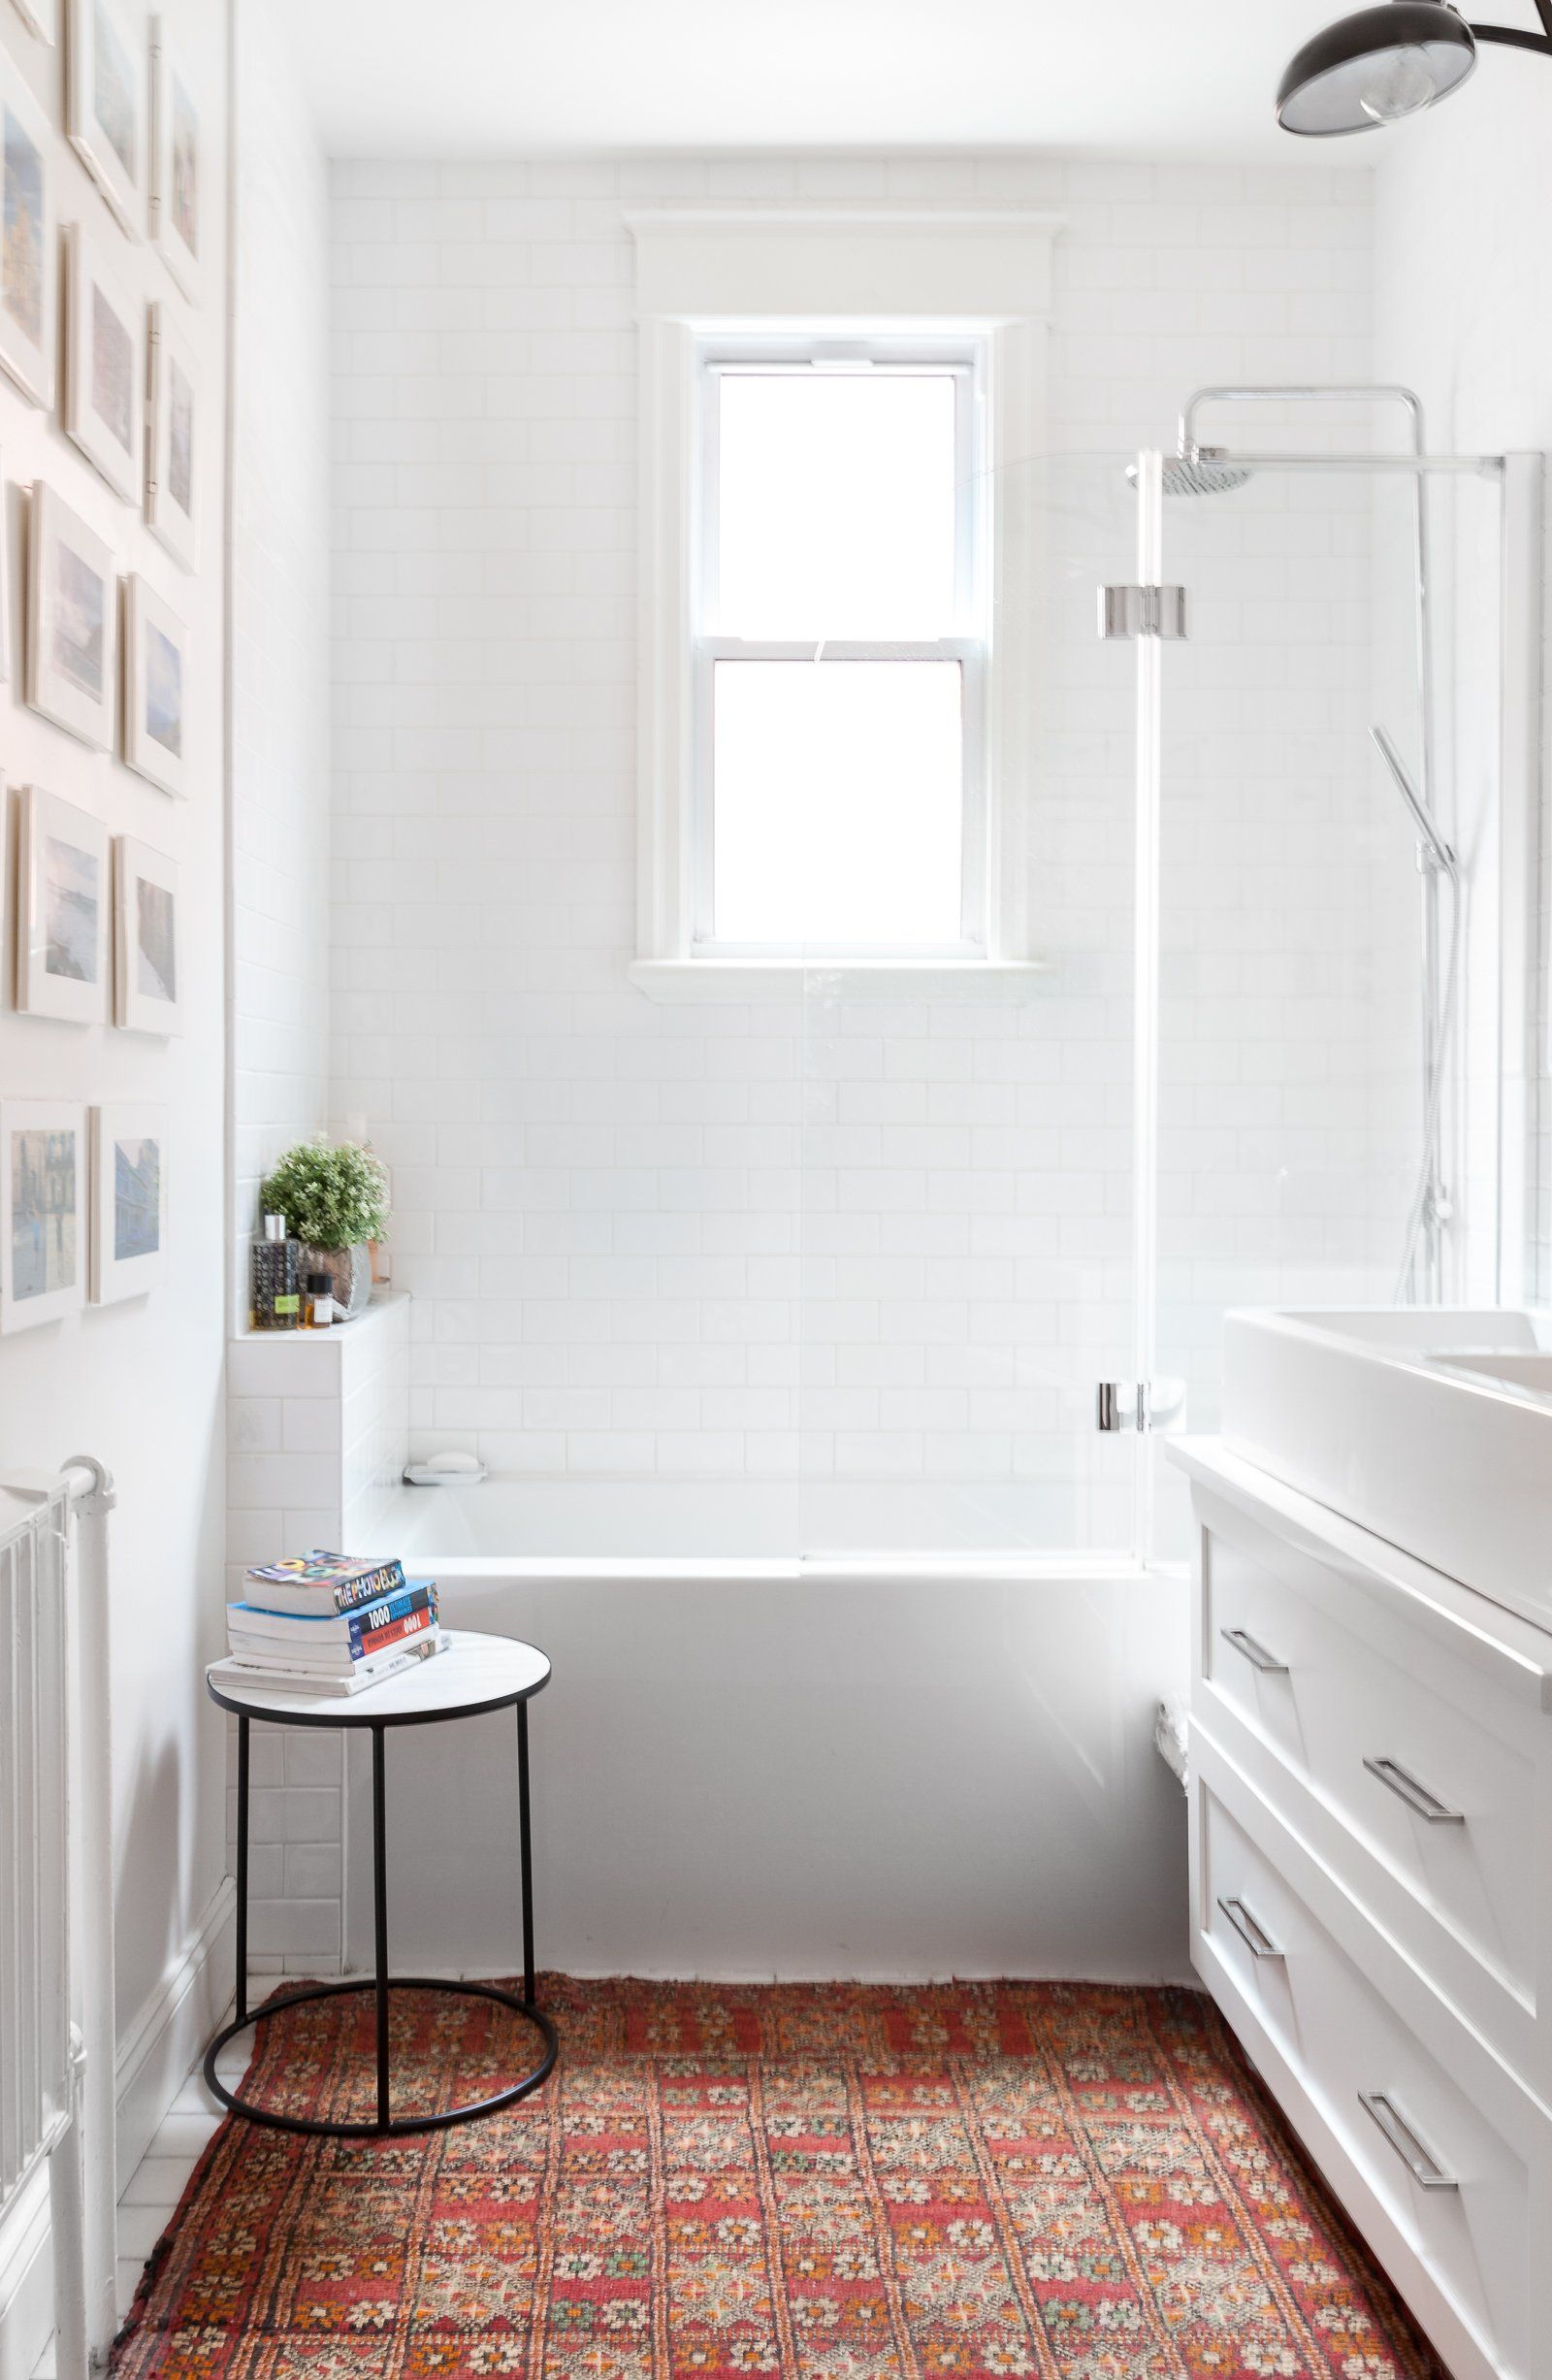 The Decor Trick That Overhauled How I Feel About My Bathroom | Bath ...